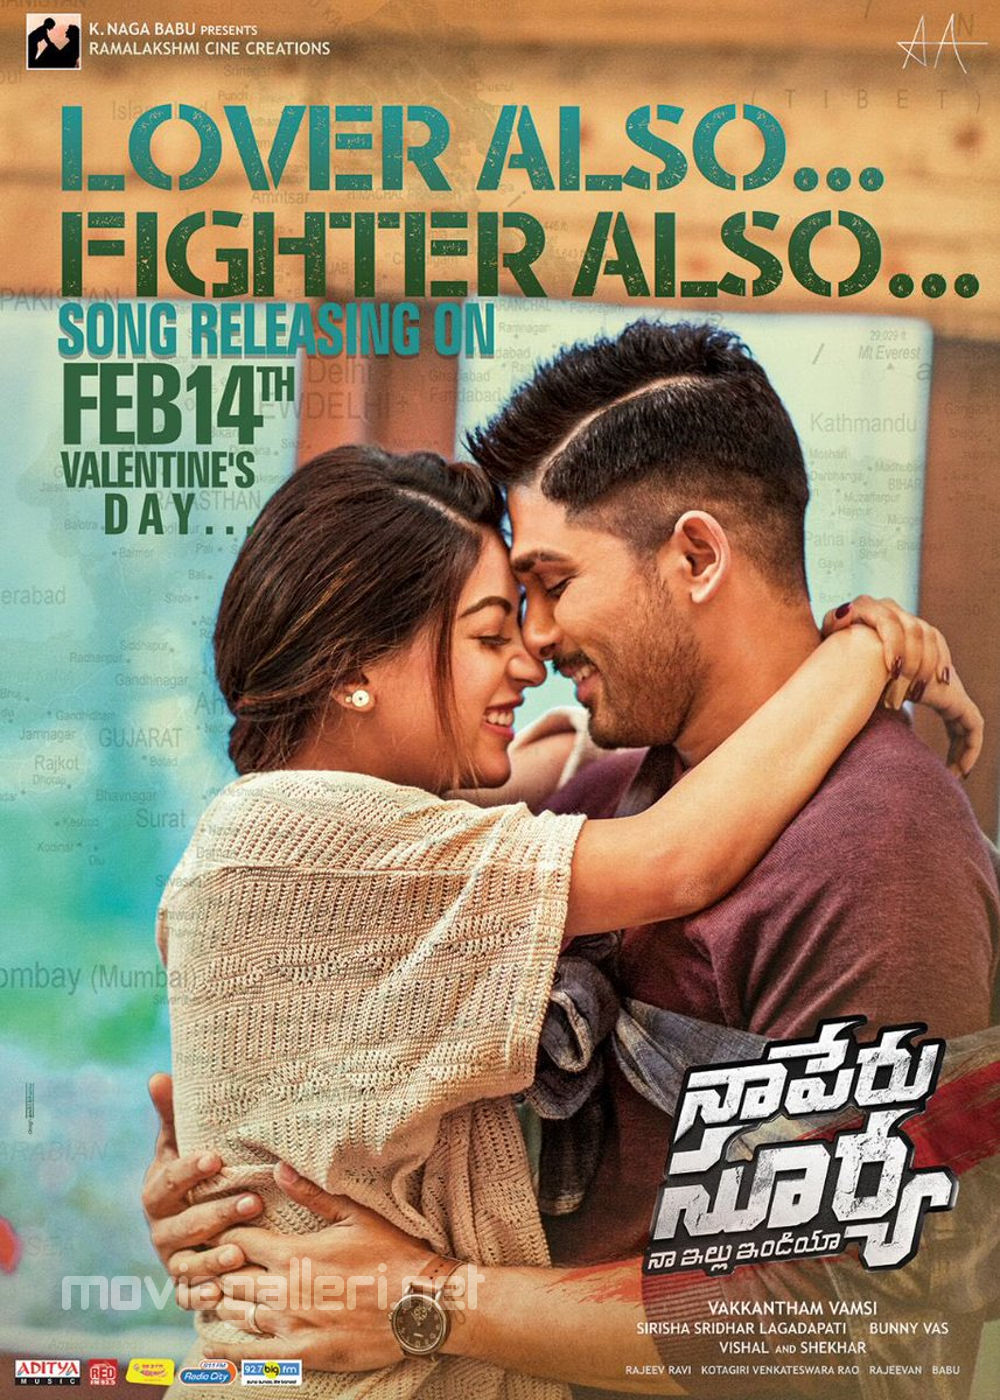 Naa Peru Surya, Naa Illu India 2nd Song LOVER ALSO FIGHTER ALSO